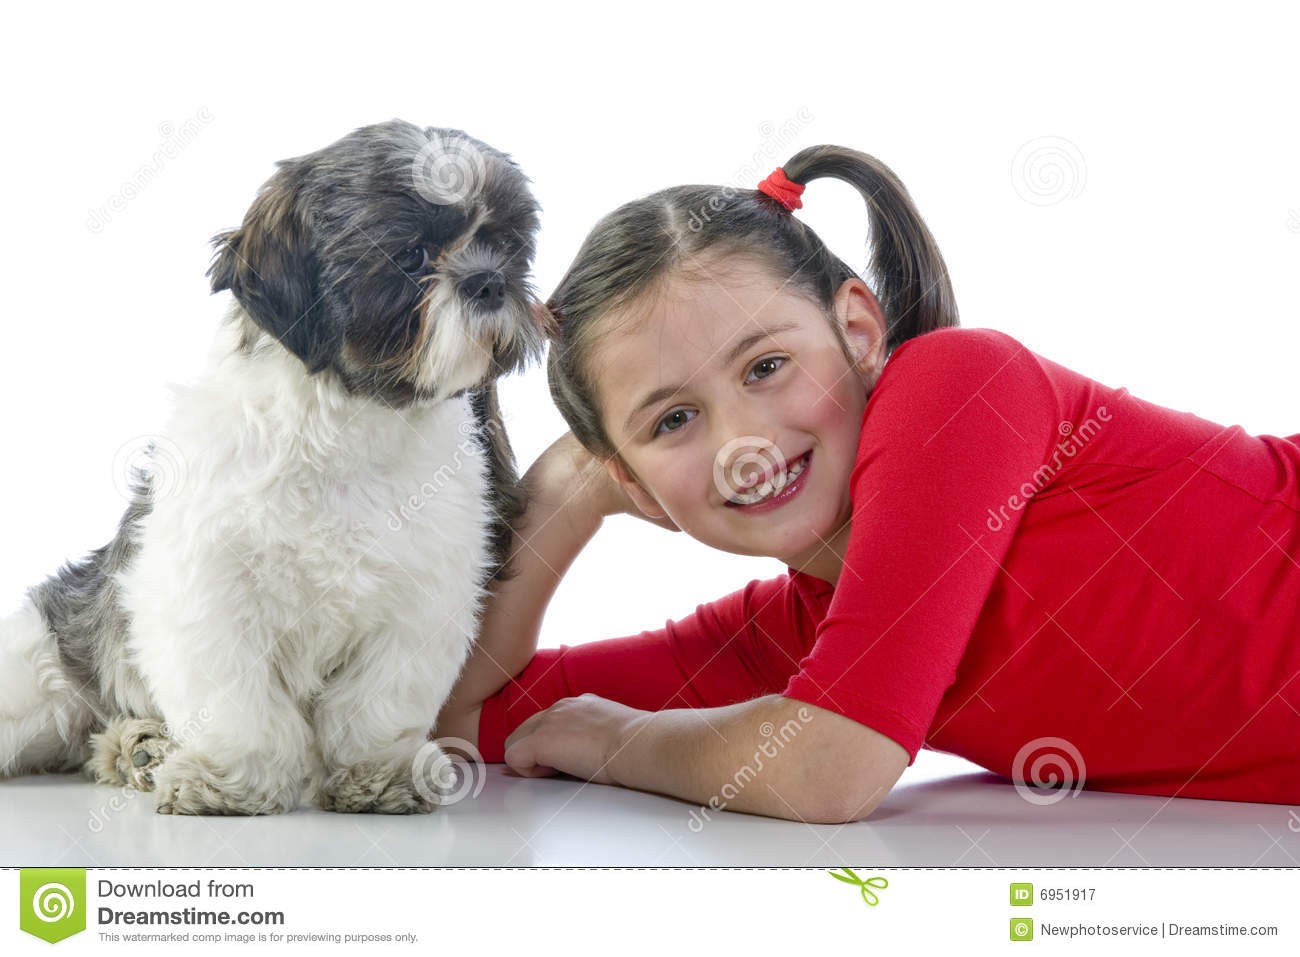 Her first time fucking a dog